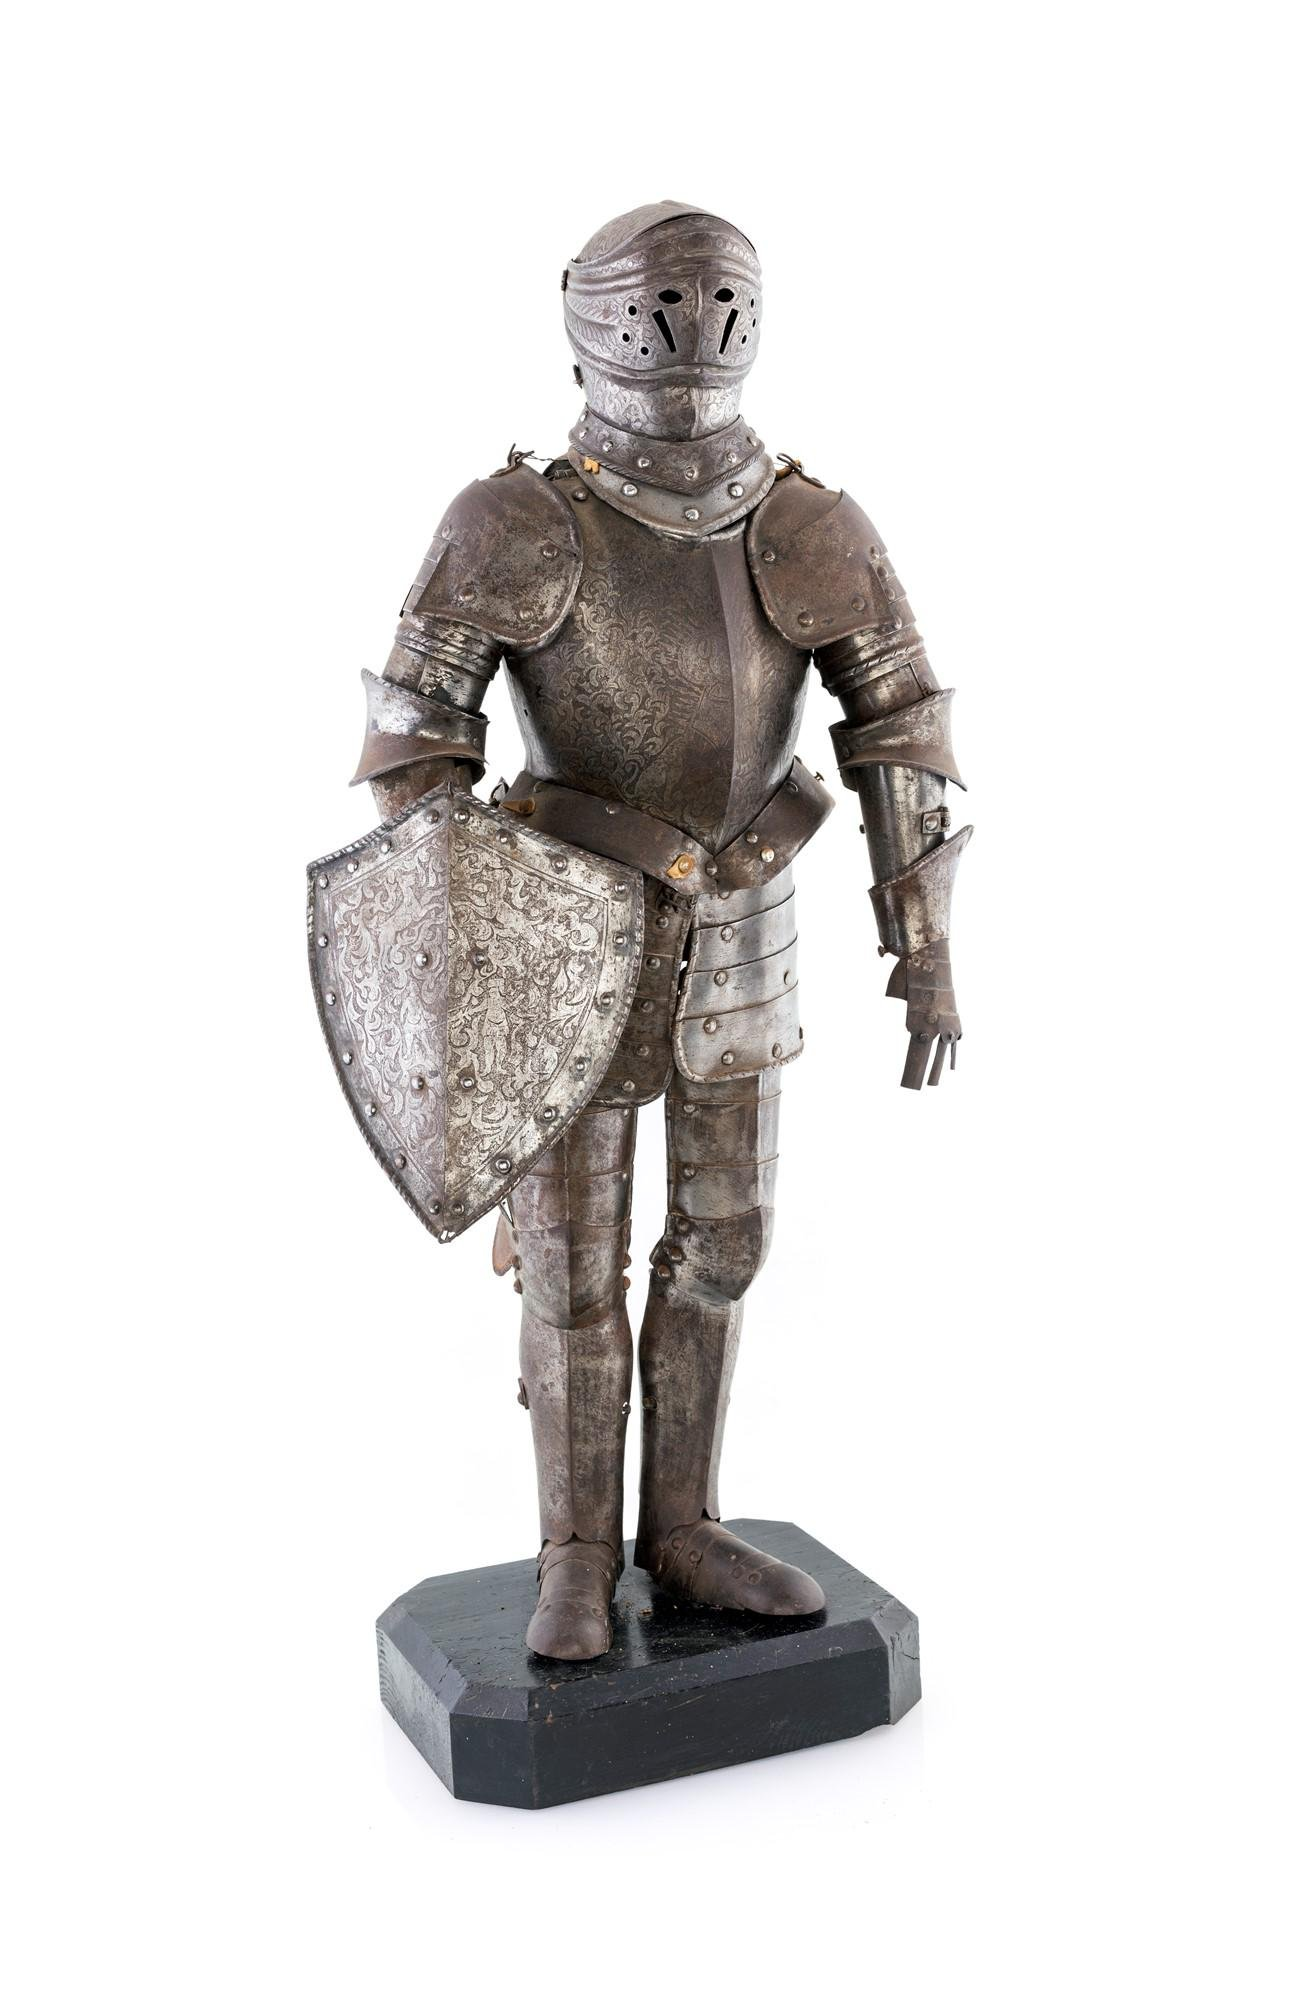 Armor model from 19th century